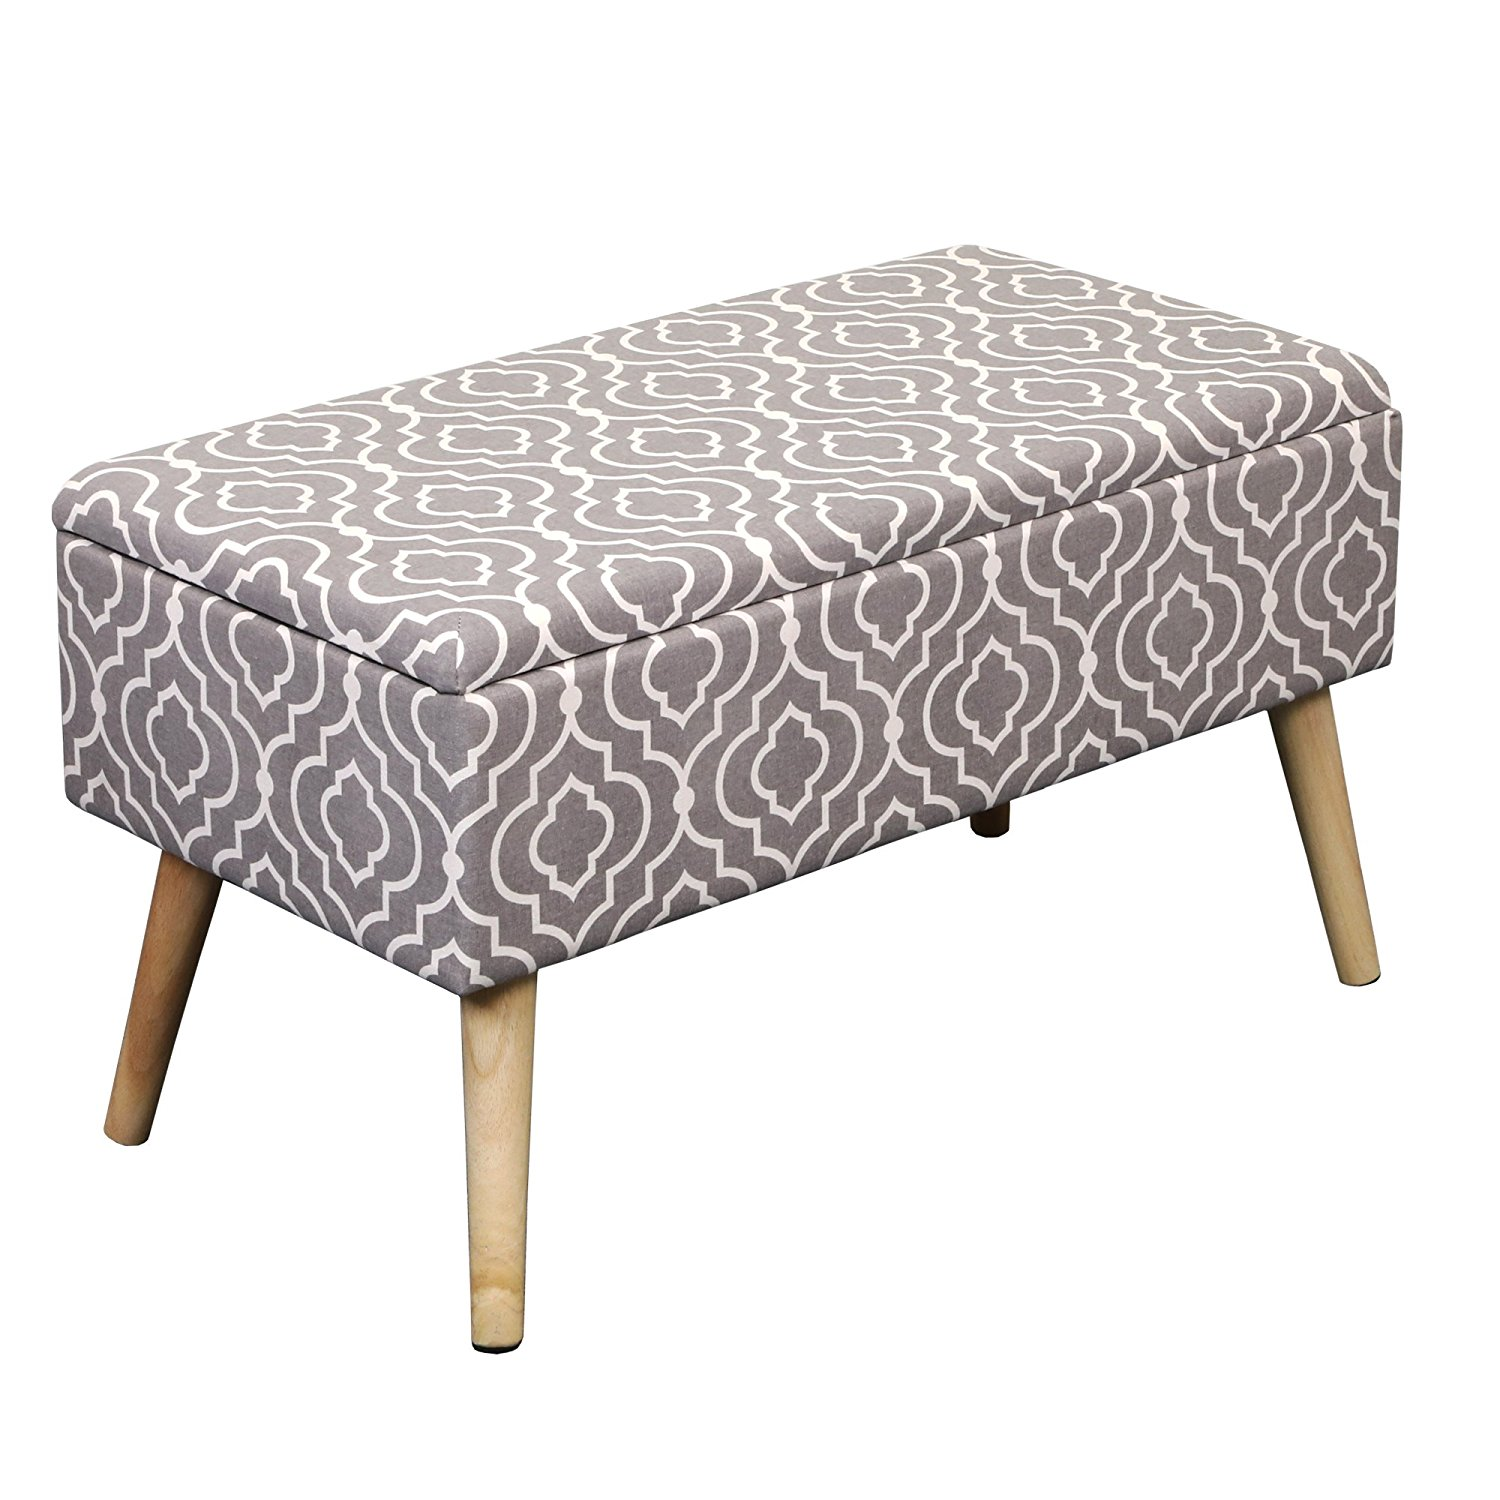 Otto & Ben 30 Inch Easy Lift Top Upholstered Ottoman Storage Bench, Multiple Colors